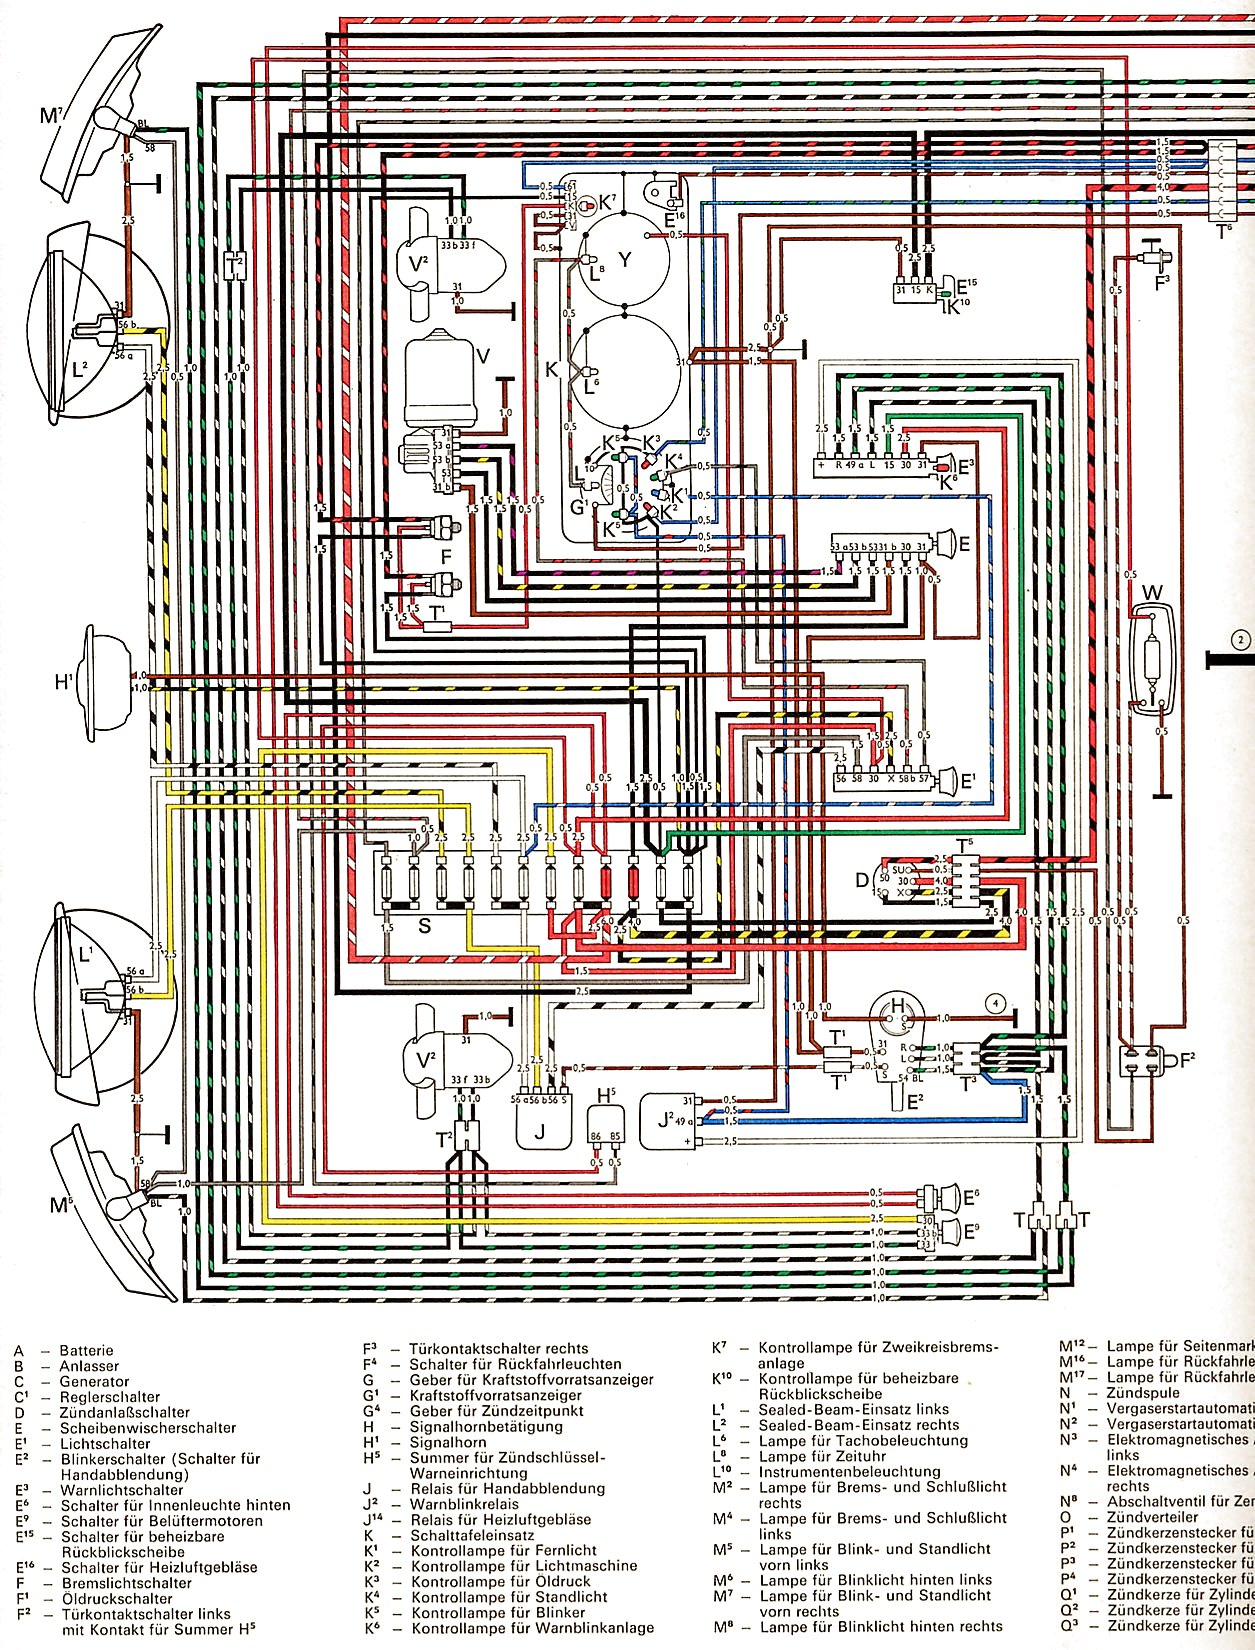 Vw Bus And Other Wiring Diagrams 1961 Chrysler Diagram 1972 Usa De Y 1 2